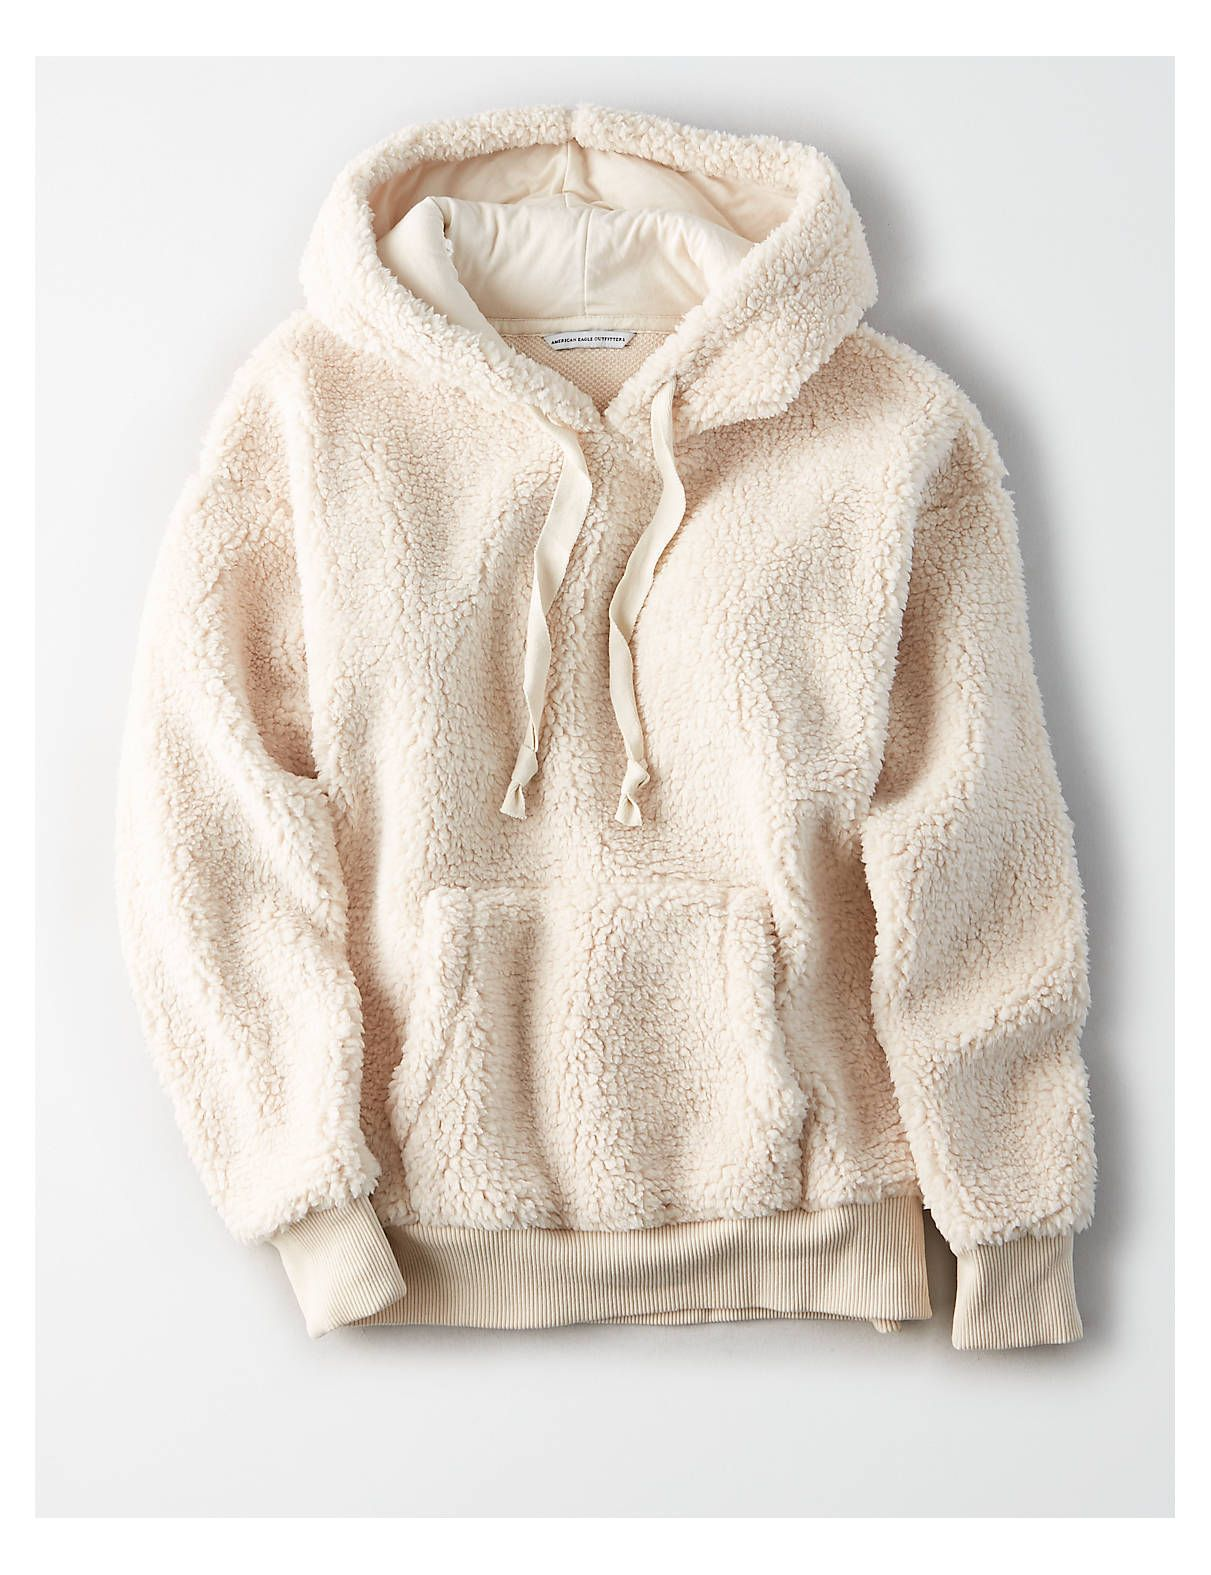 AE Fuzzy Teddy Sherpa Hoodie Cream  American Eagle Outfitters  Zubehör Adlerausstatter AE Fuzzy Teddy Sherpa Hoodie Cream  American Eagle Outfitters  Winter Outfits